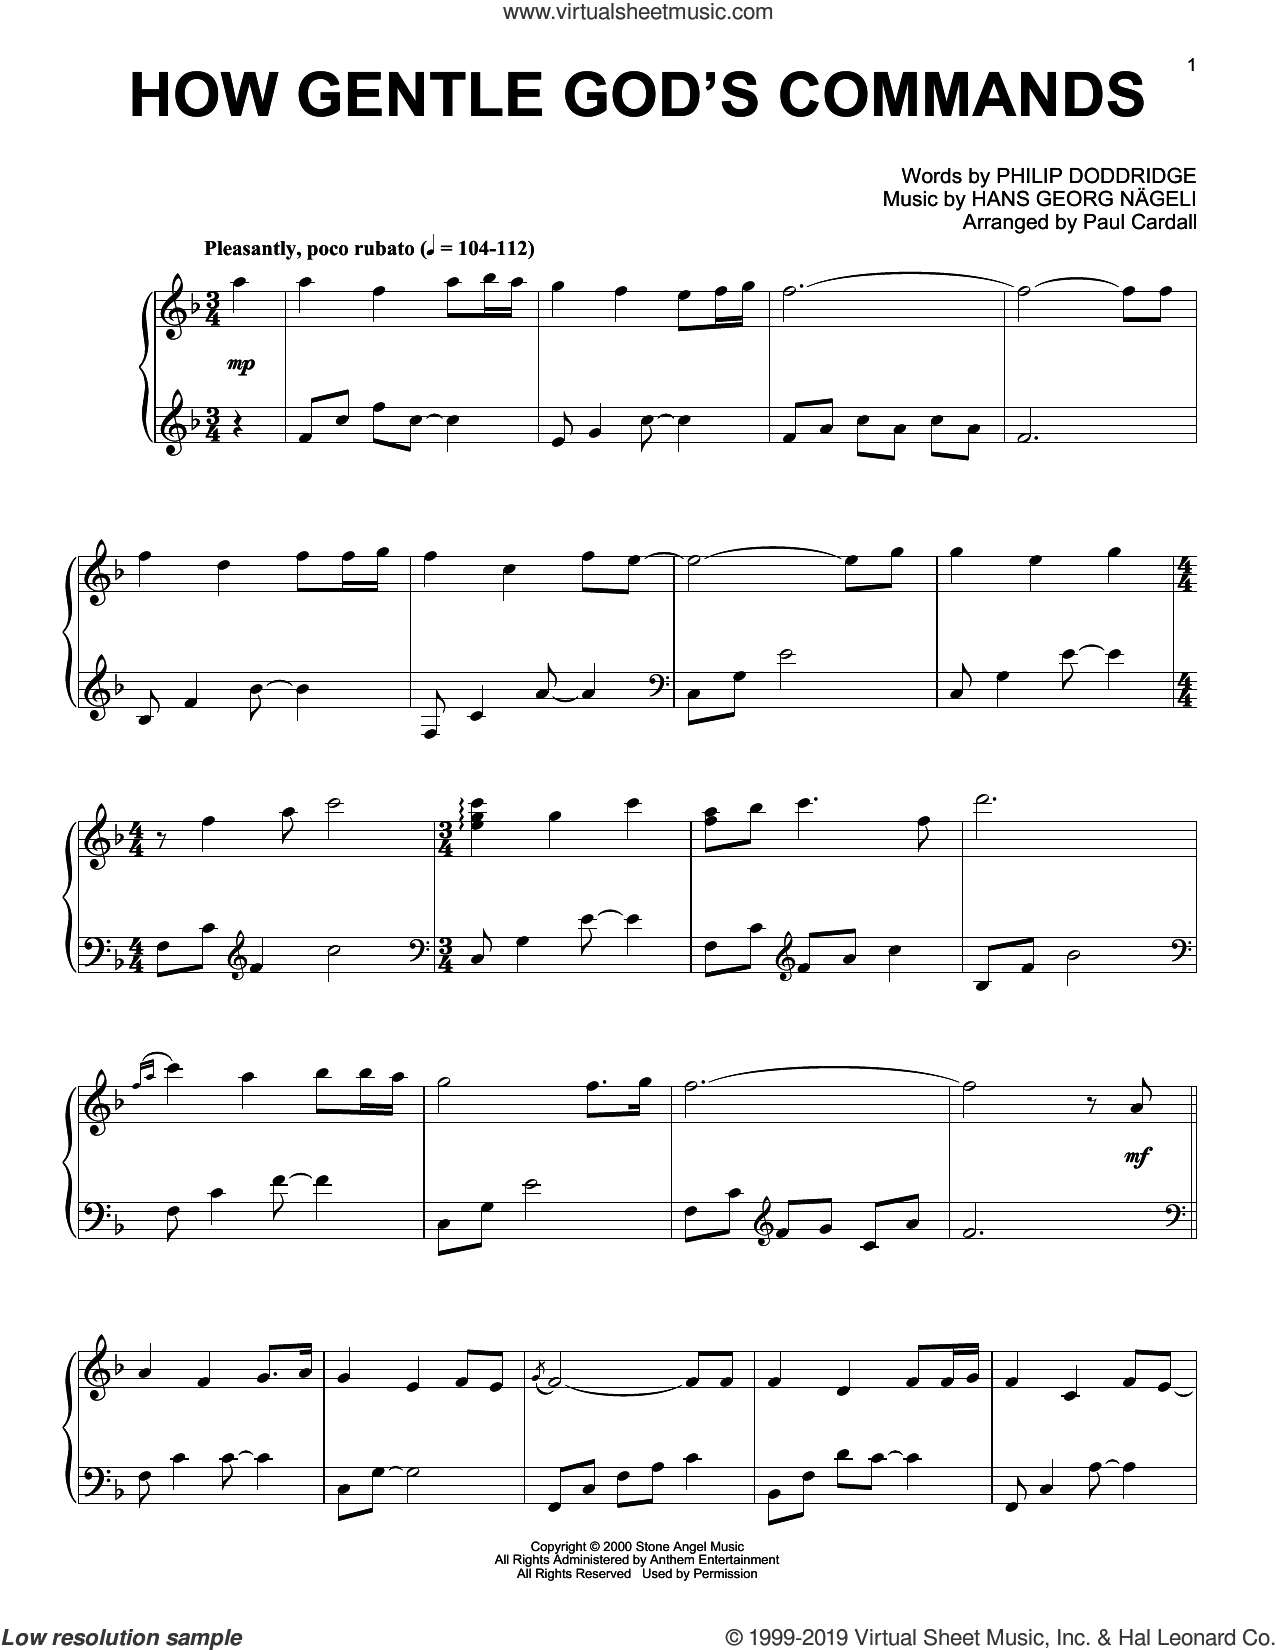 How Gentle God's Commands (arr. Paul Cardall) sheet music for piano solo by Hans Georg Nageli, Paul Cardall and Philip Doddridge, intermediate skill level